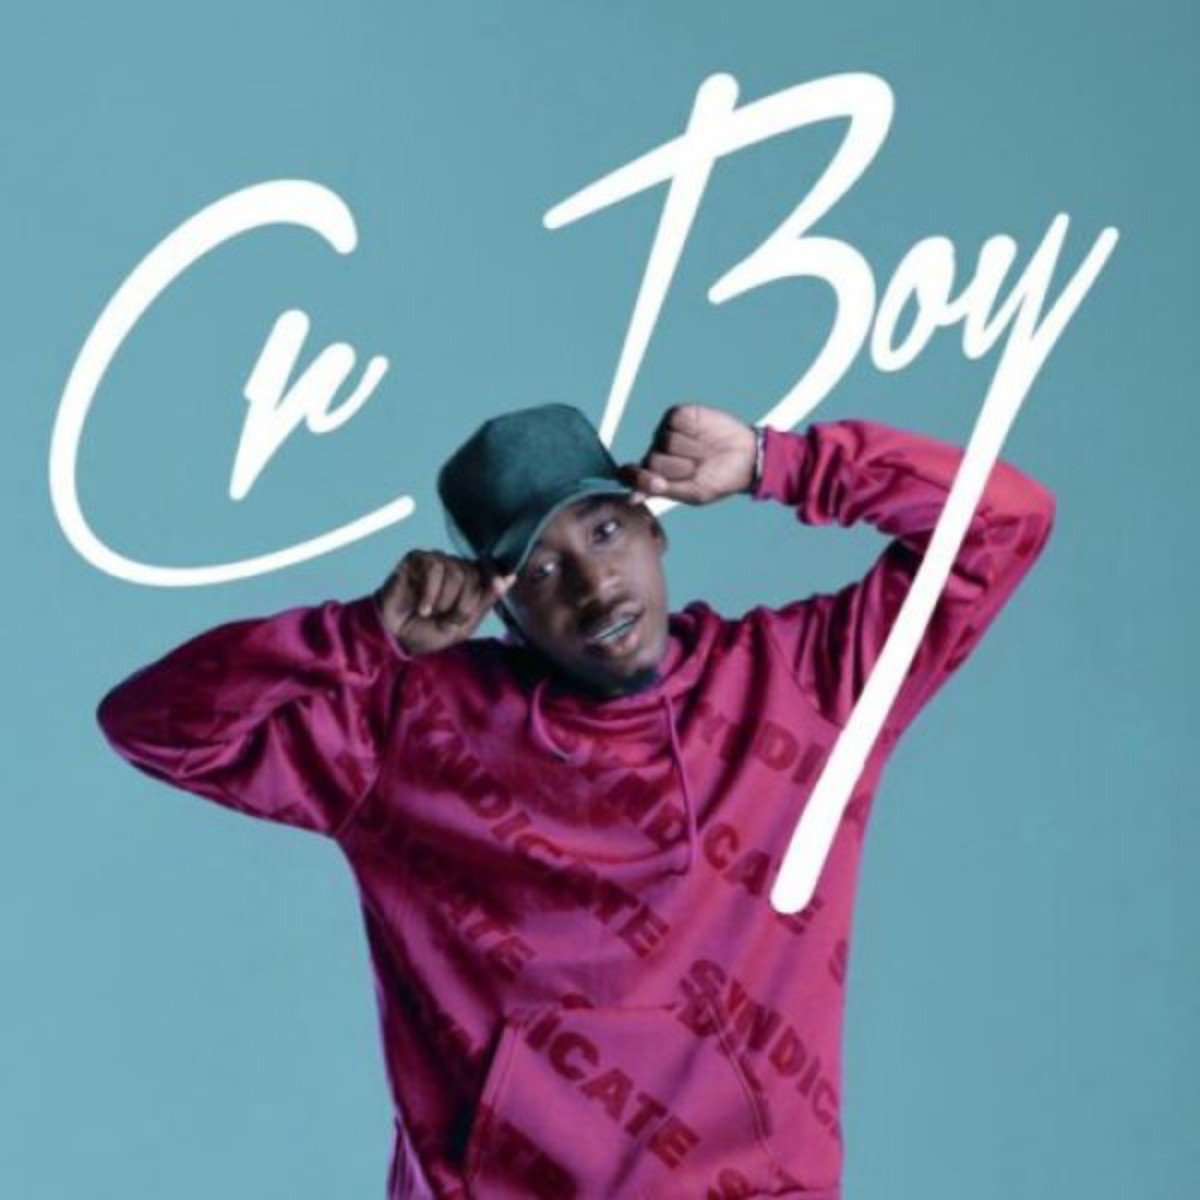 Cr Boy - Taxi (feat. Trap Boys)